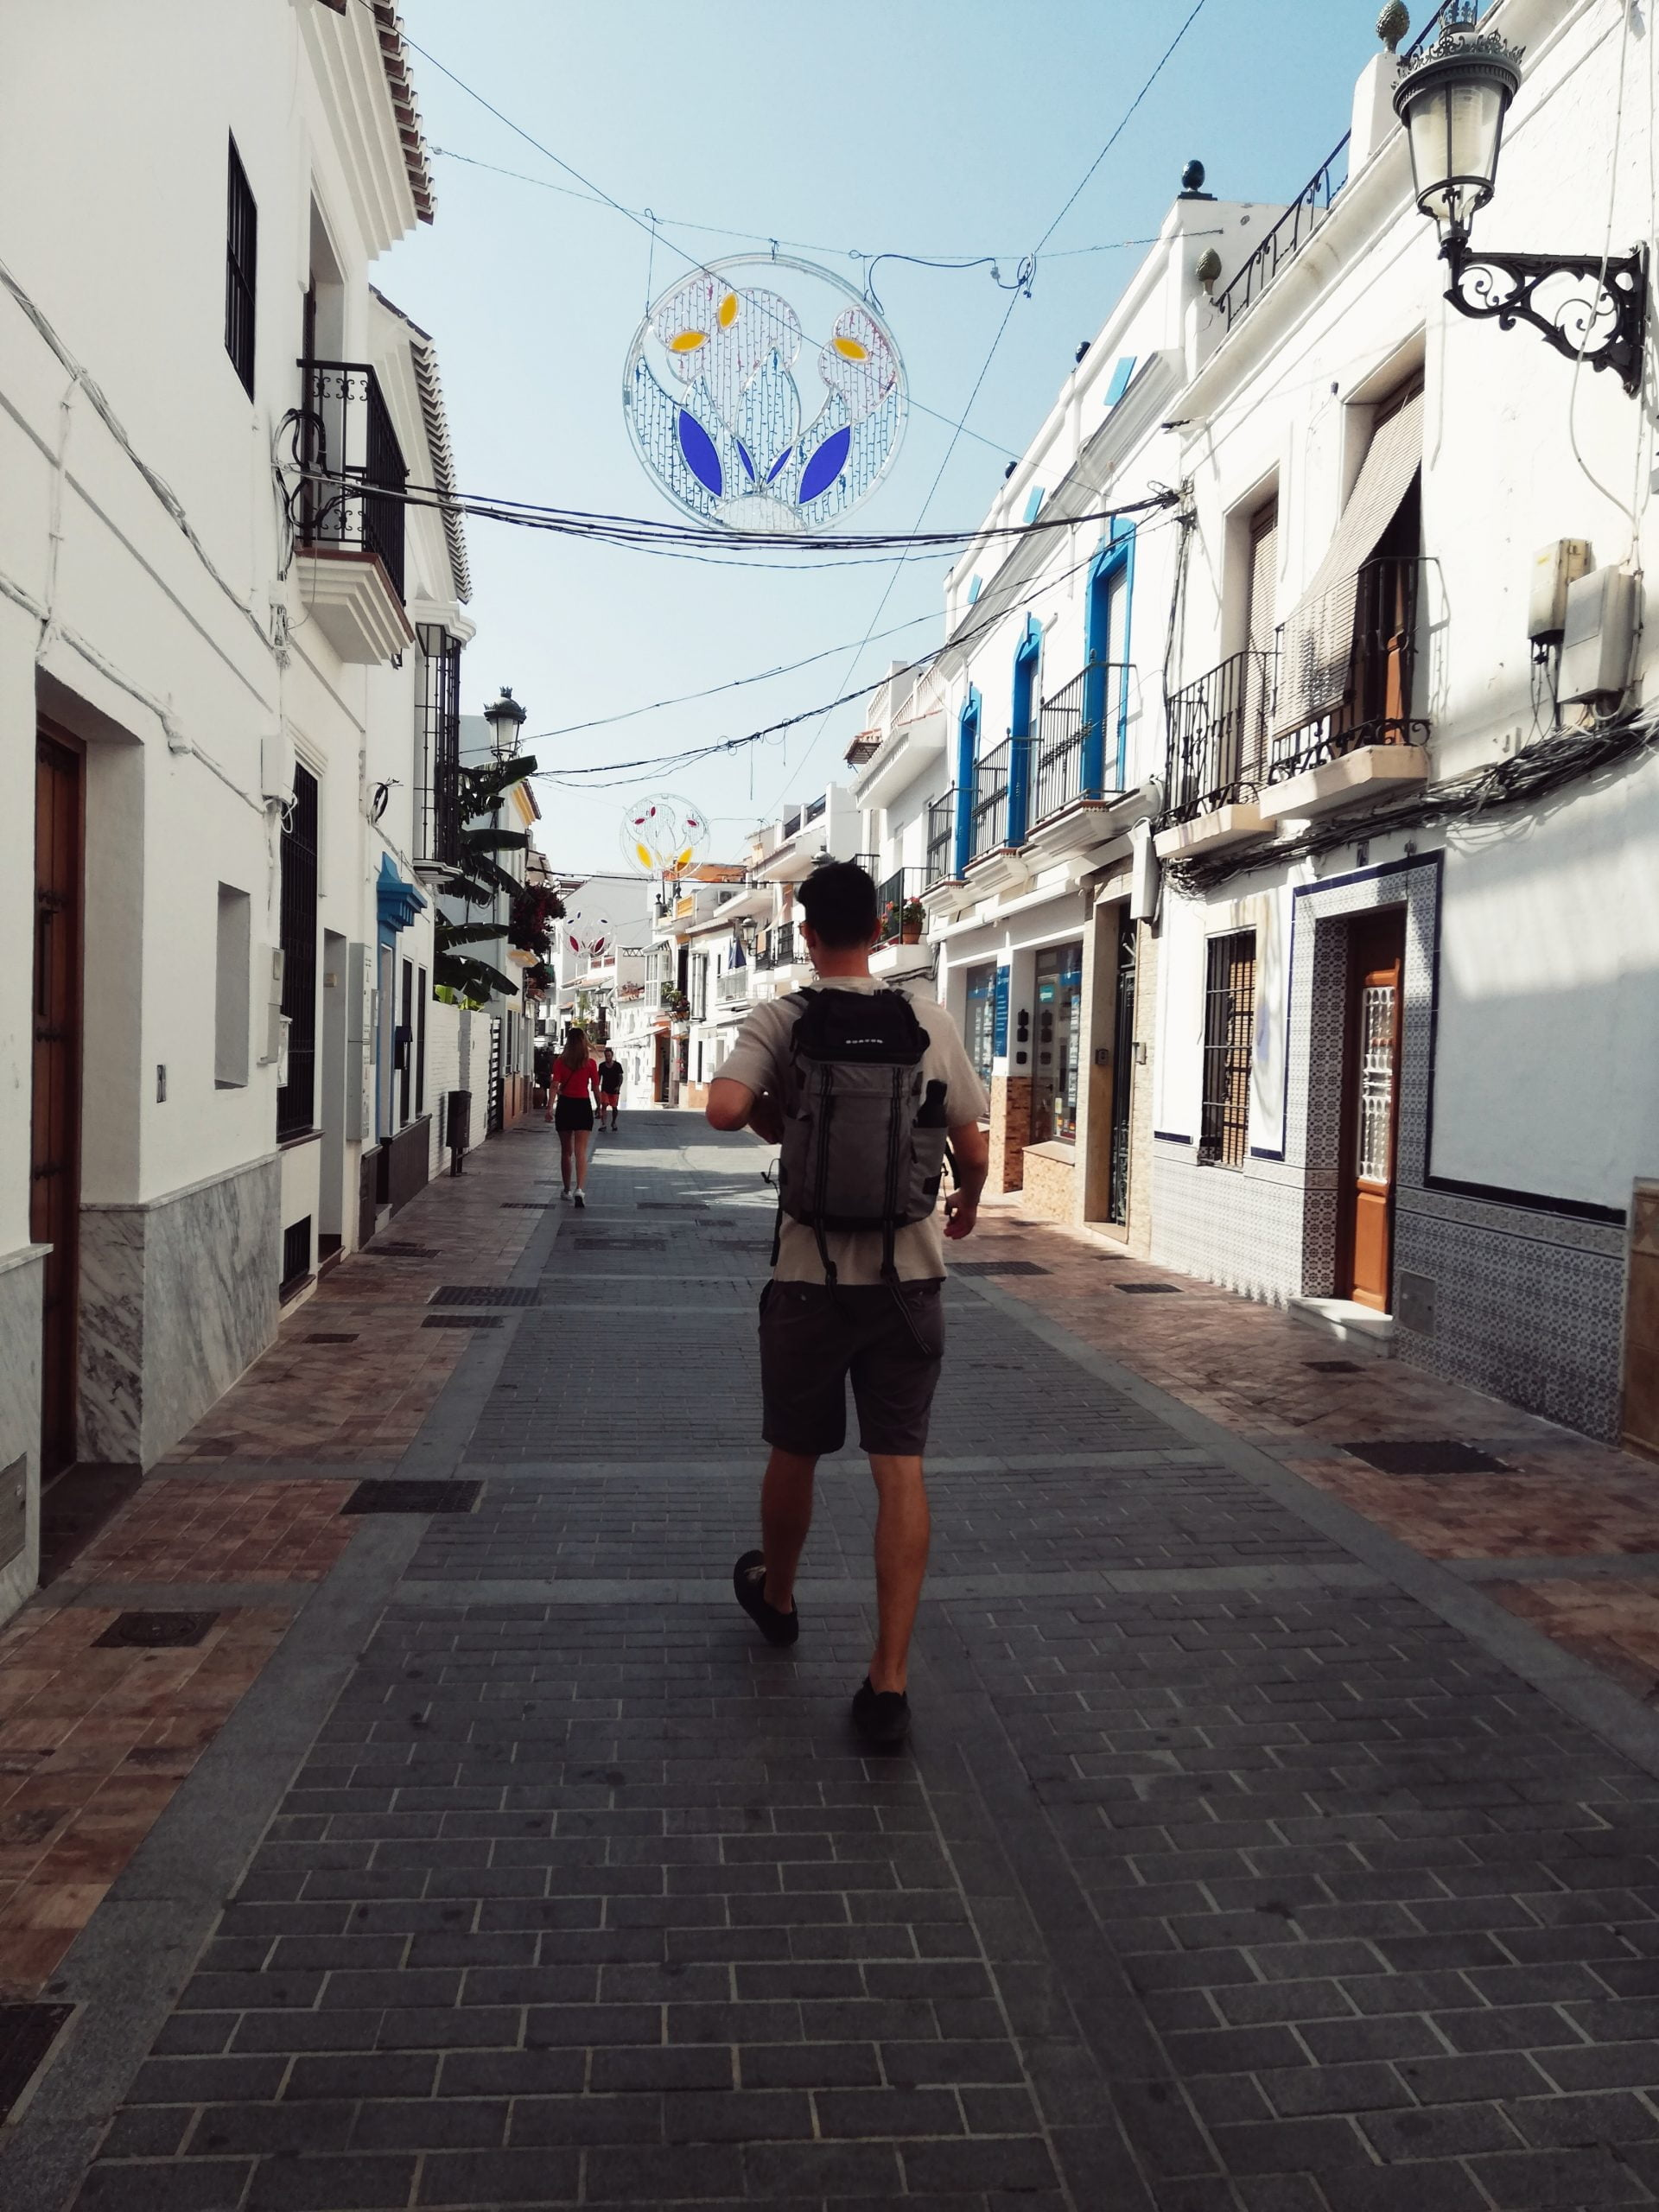 The town of Nerja